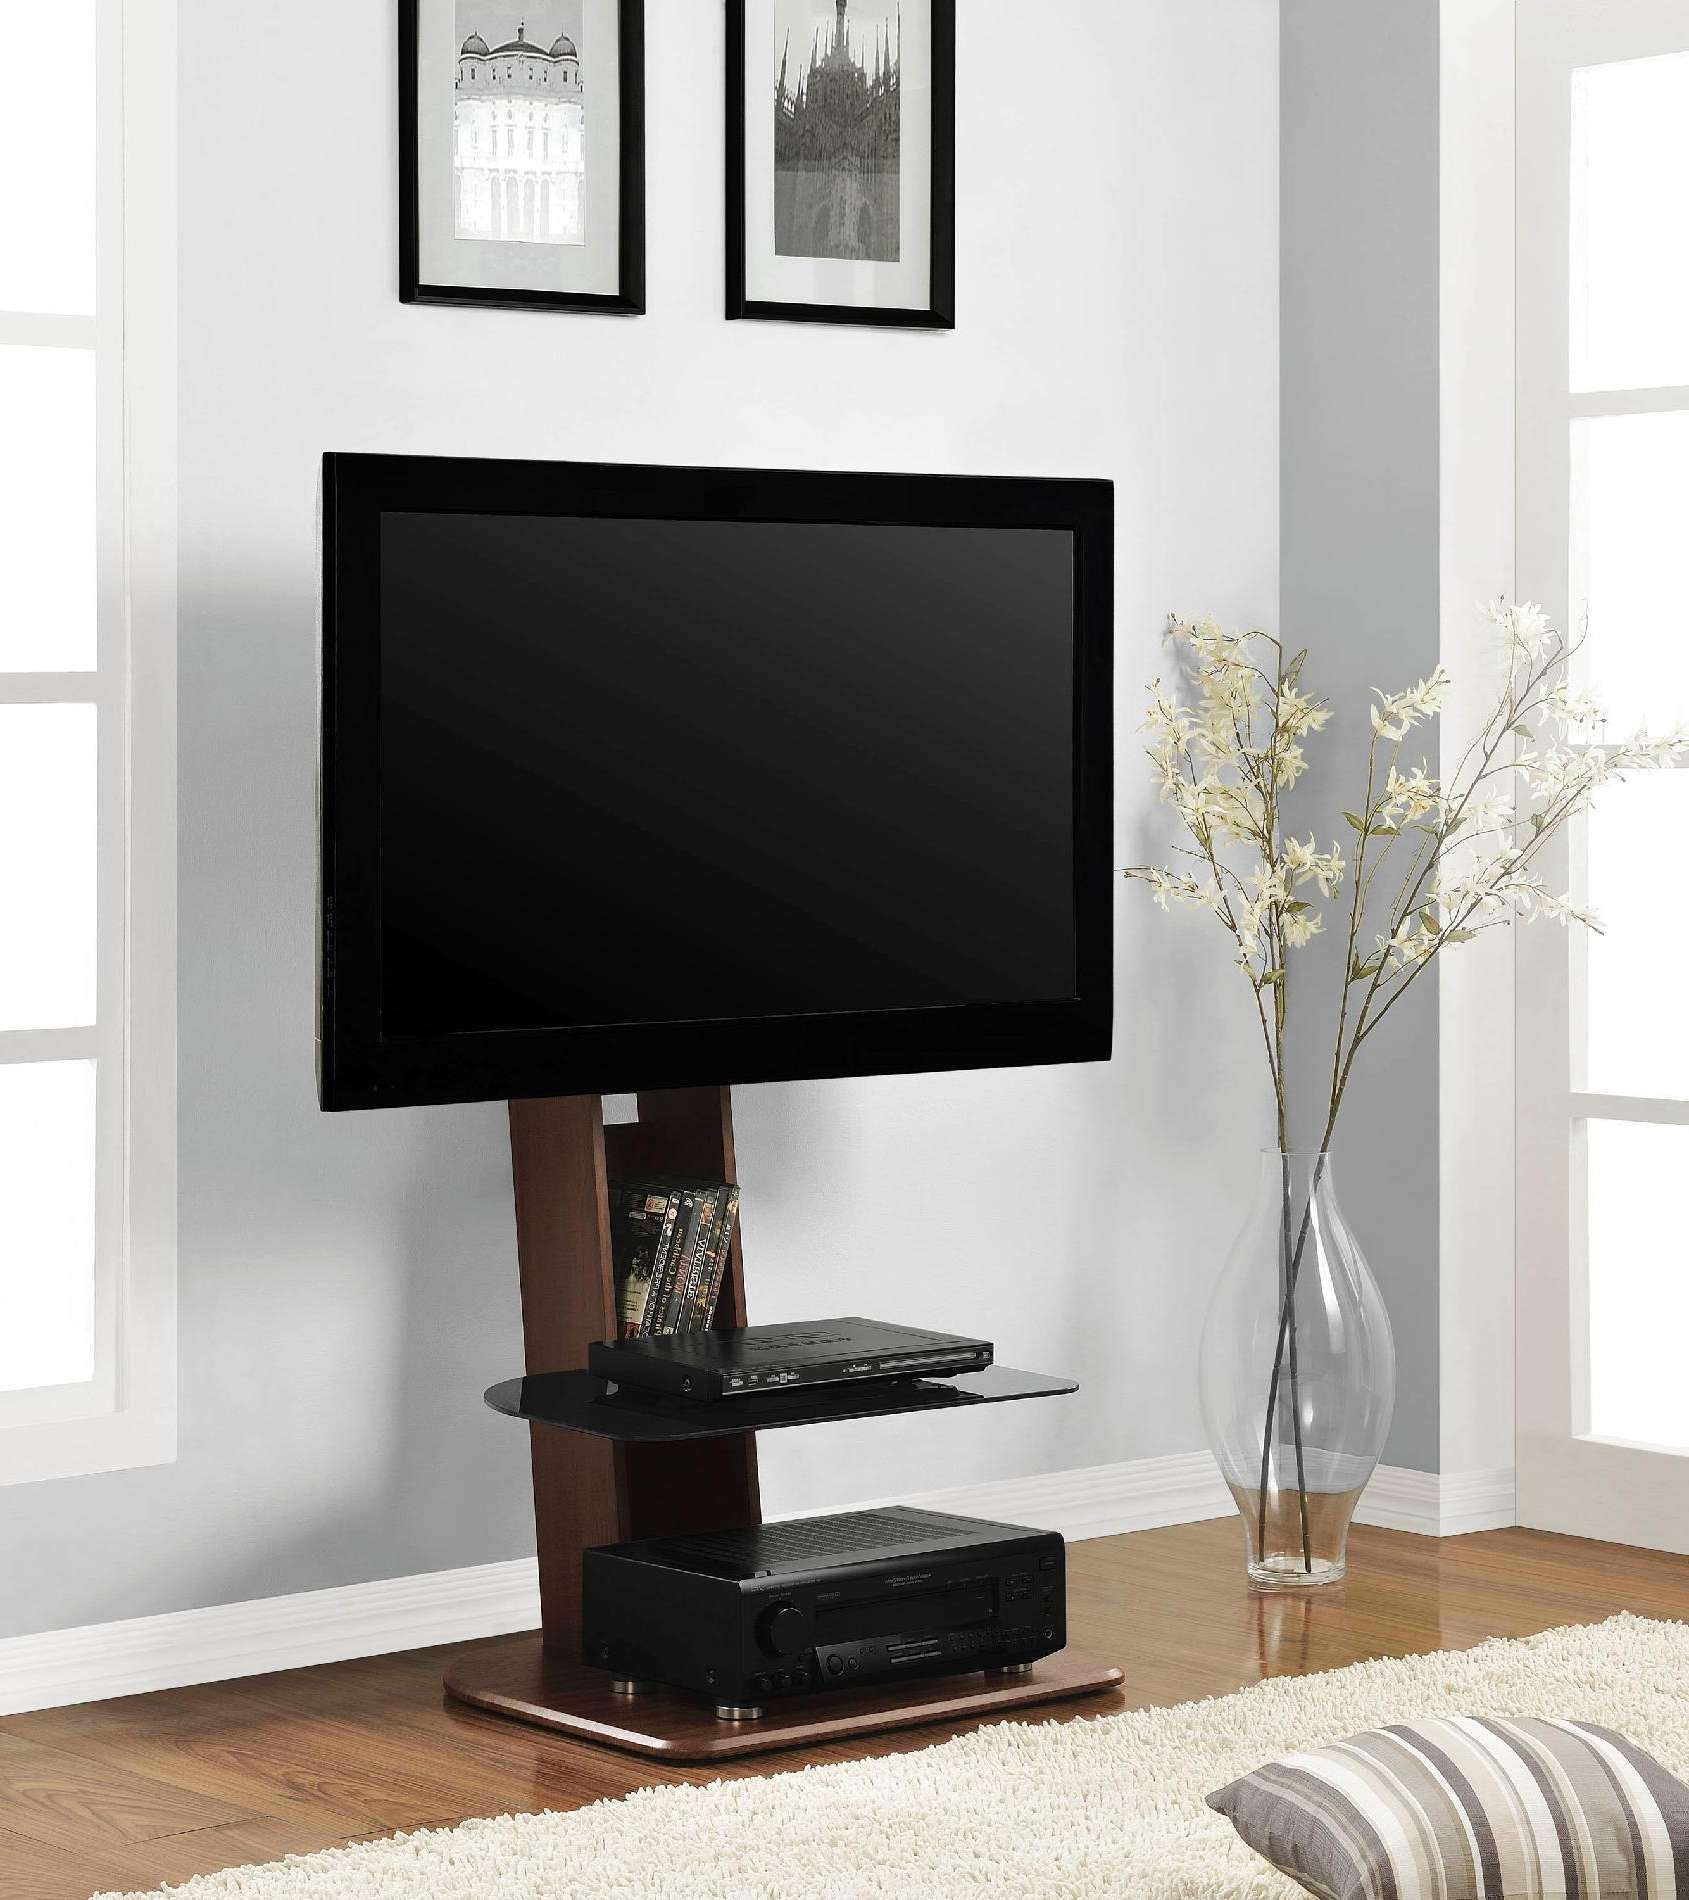 Startling Mount Discount Tv Stands Wall Brown Carpet Television In Wood Tv Stands With Swivel Mount (View 9 of 15)